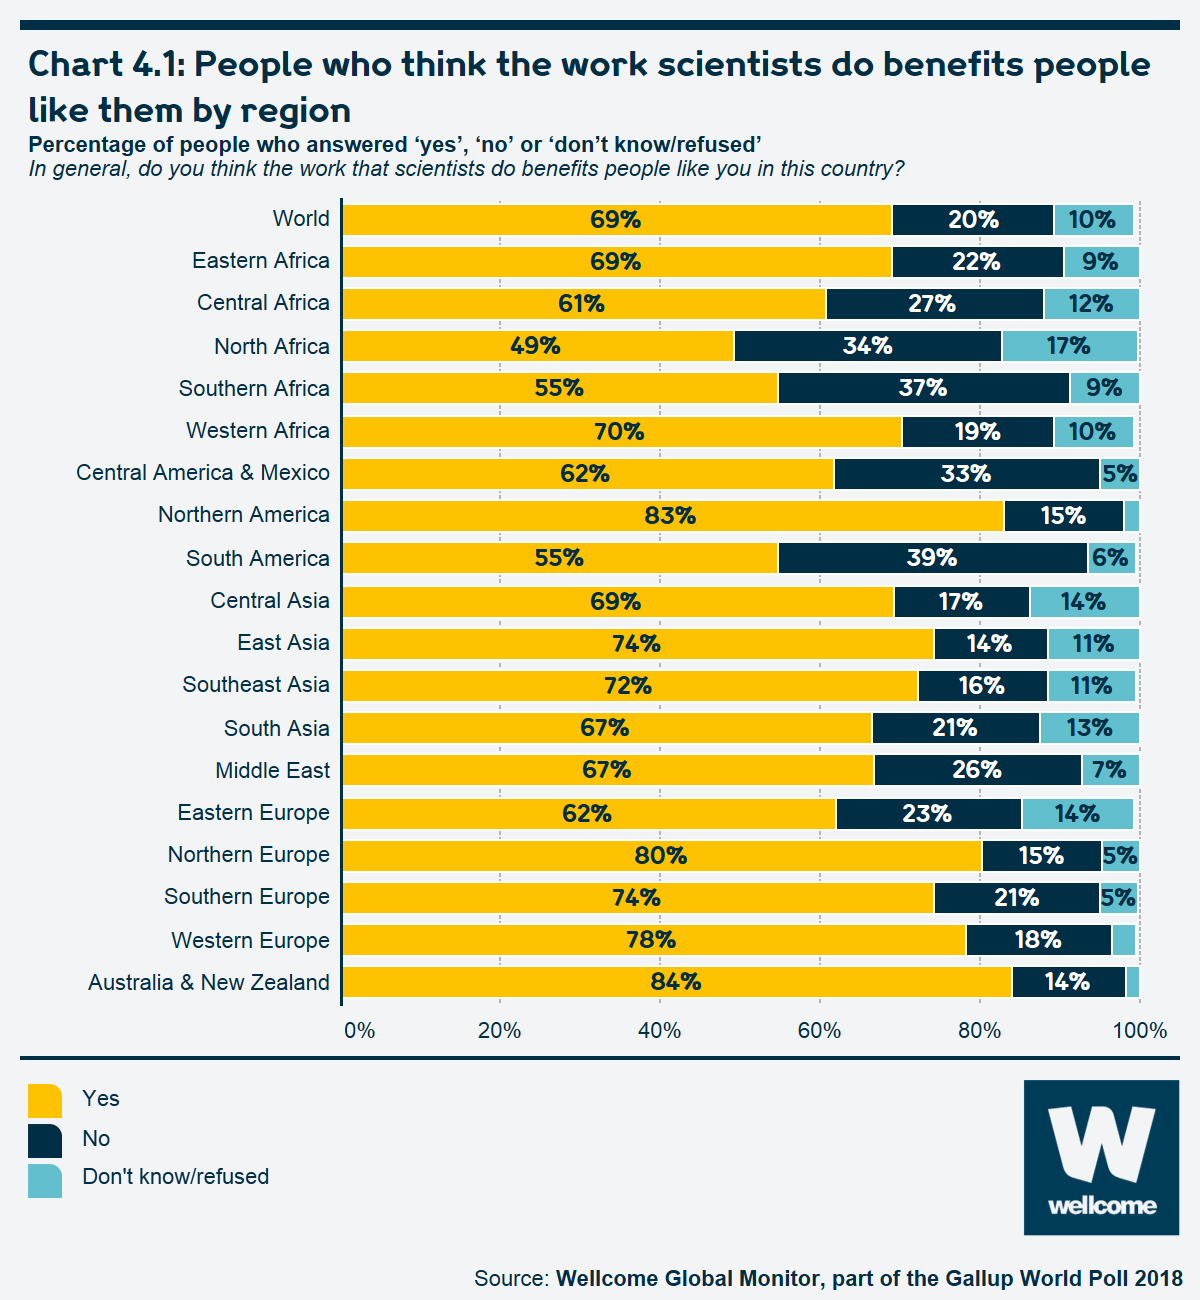 Chart 4.1 People who think the work scientists do benefits people like them by region